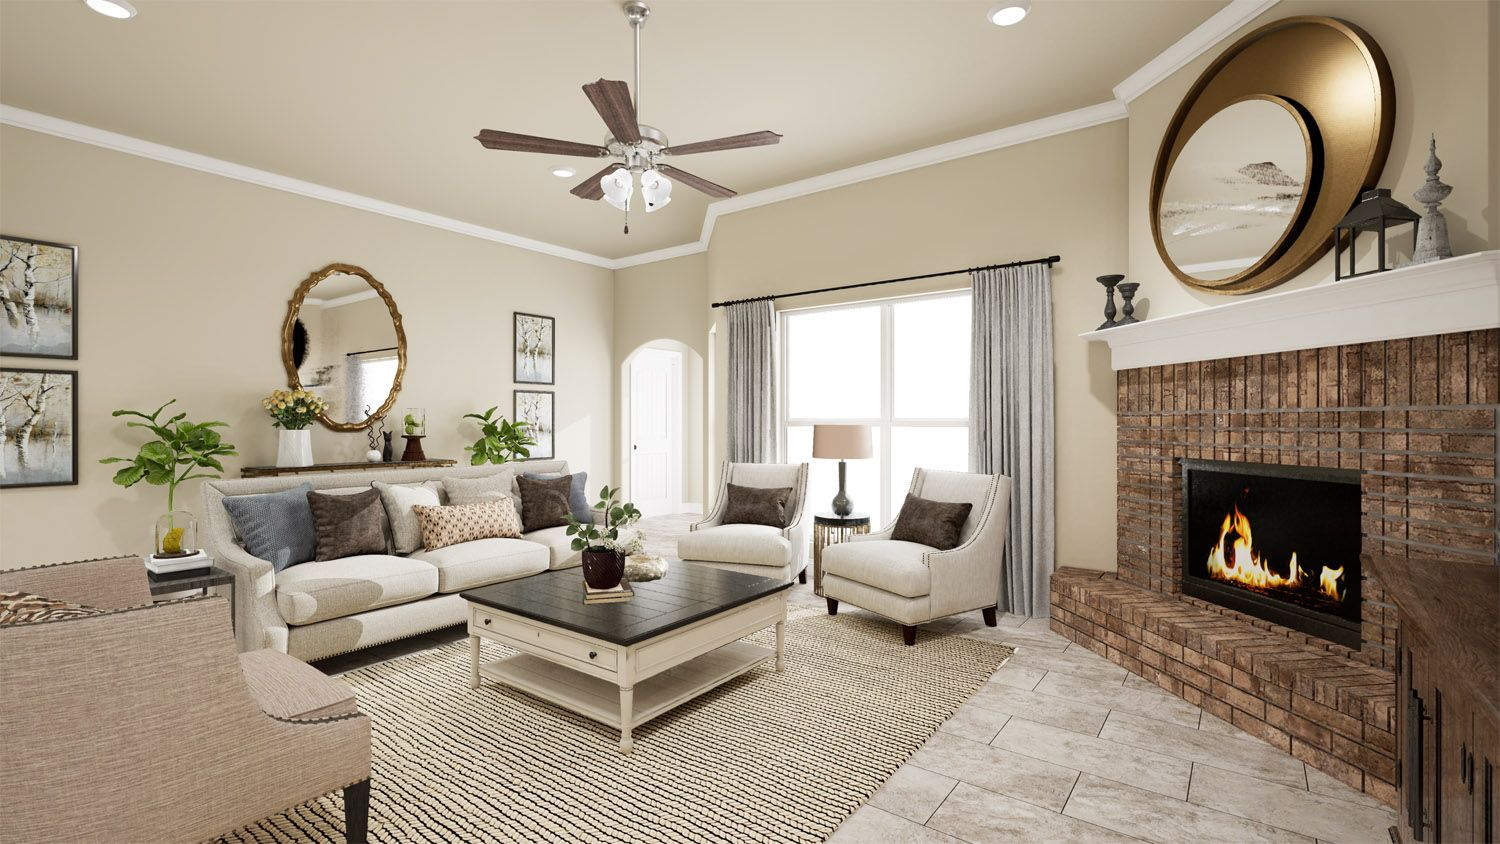 Living Area featured in the 2500 Series By Schuber Mitchell Homes in Joplin, MO